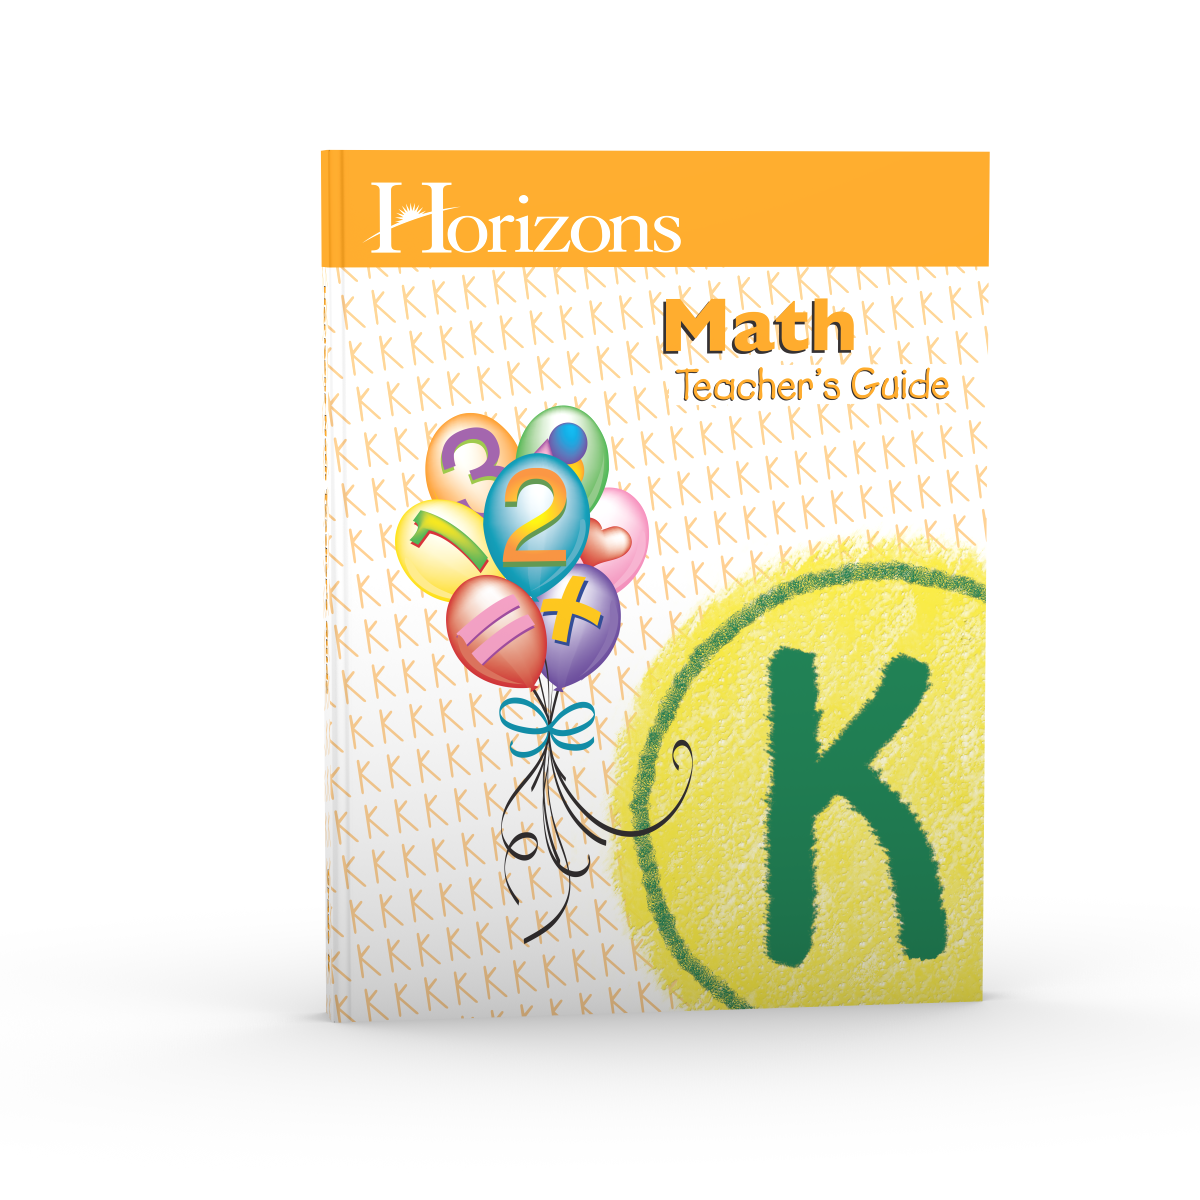 Horizons Kindergarten Math Teacher's Guide